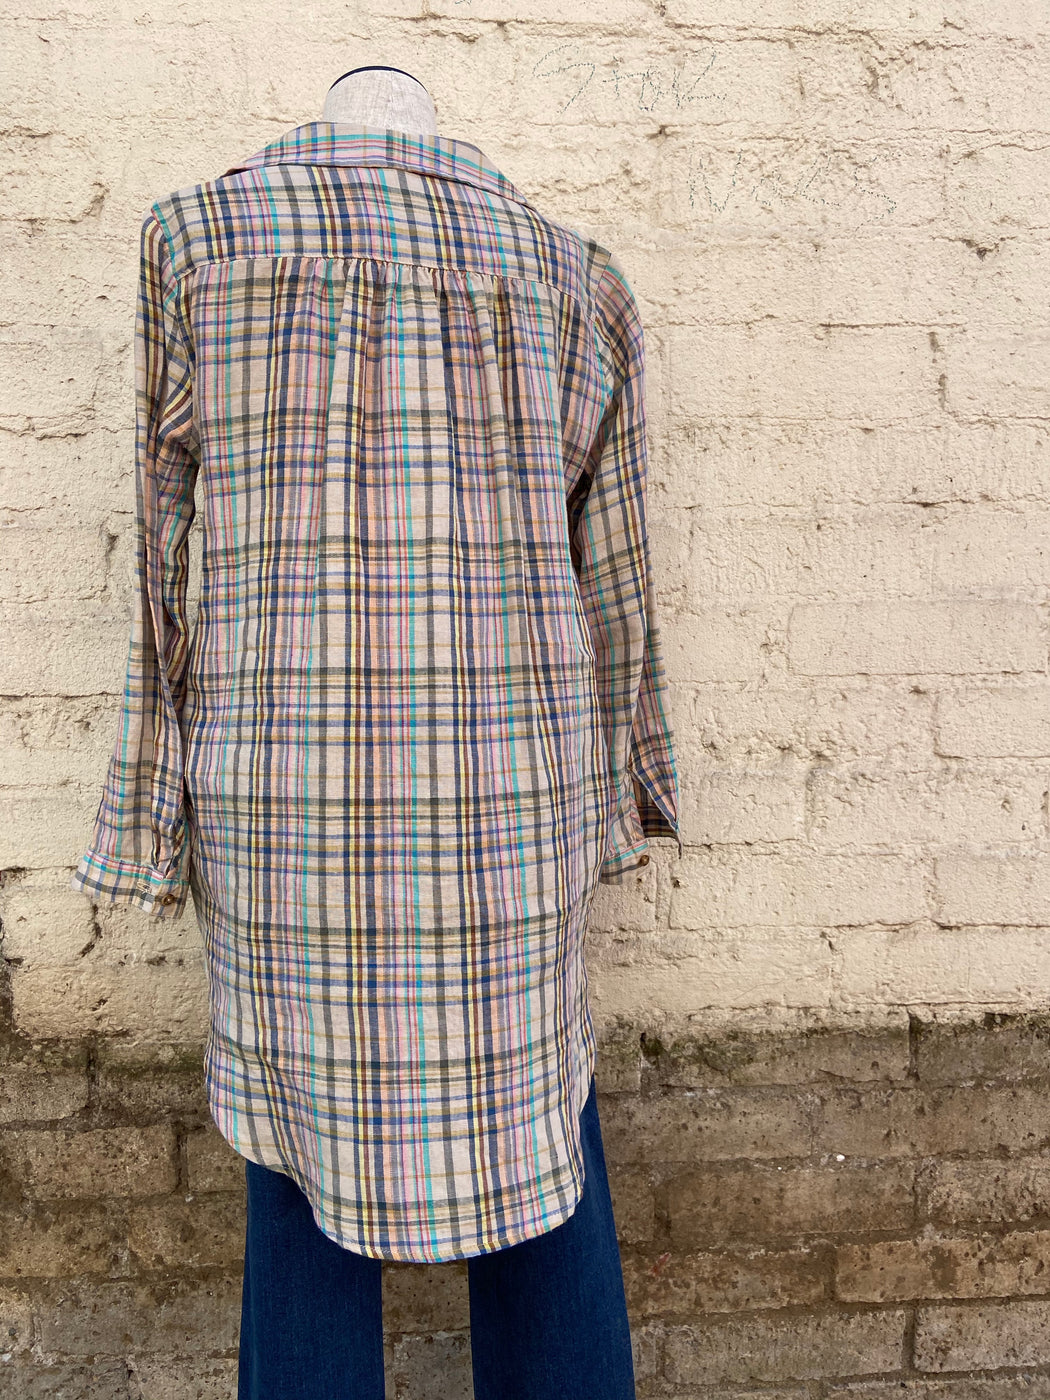 This pastel plaid tunic, by Uncle Frank, is 100% linen and is long sleeved with two pockets.